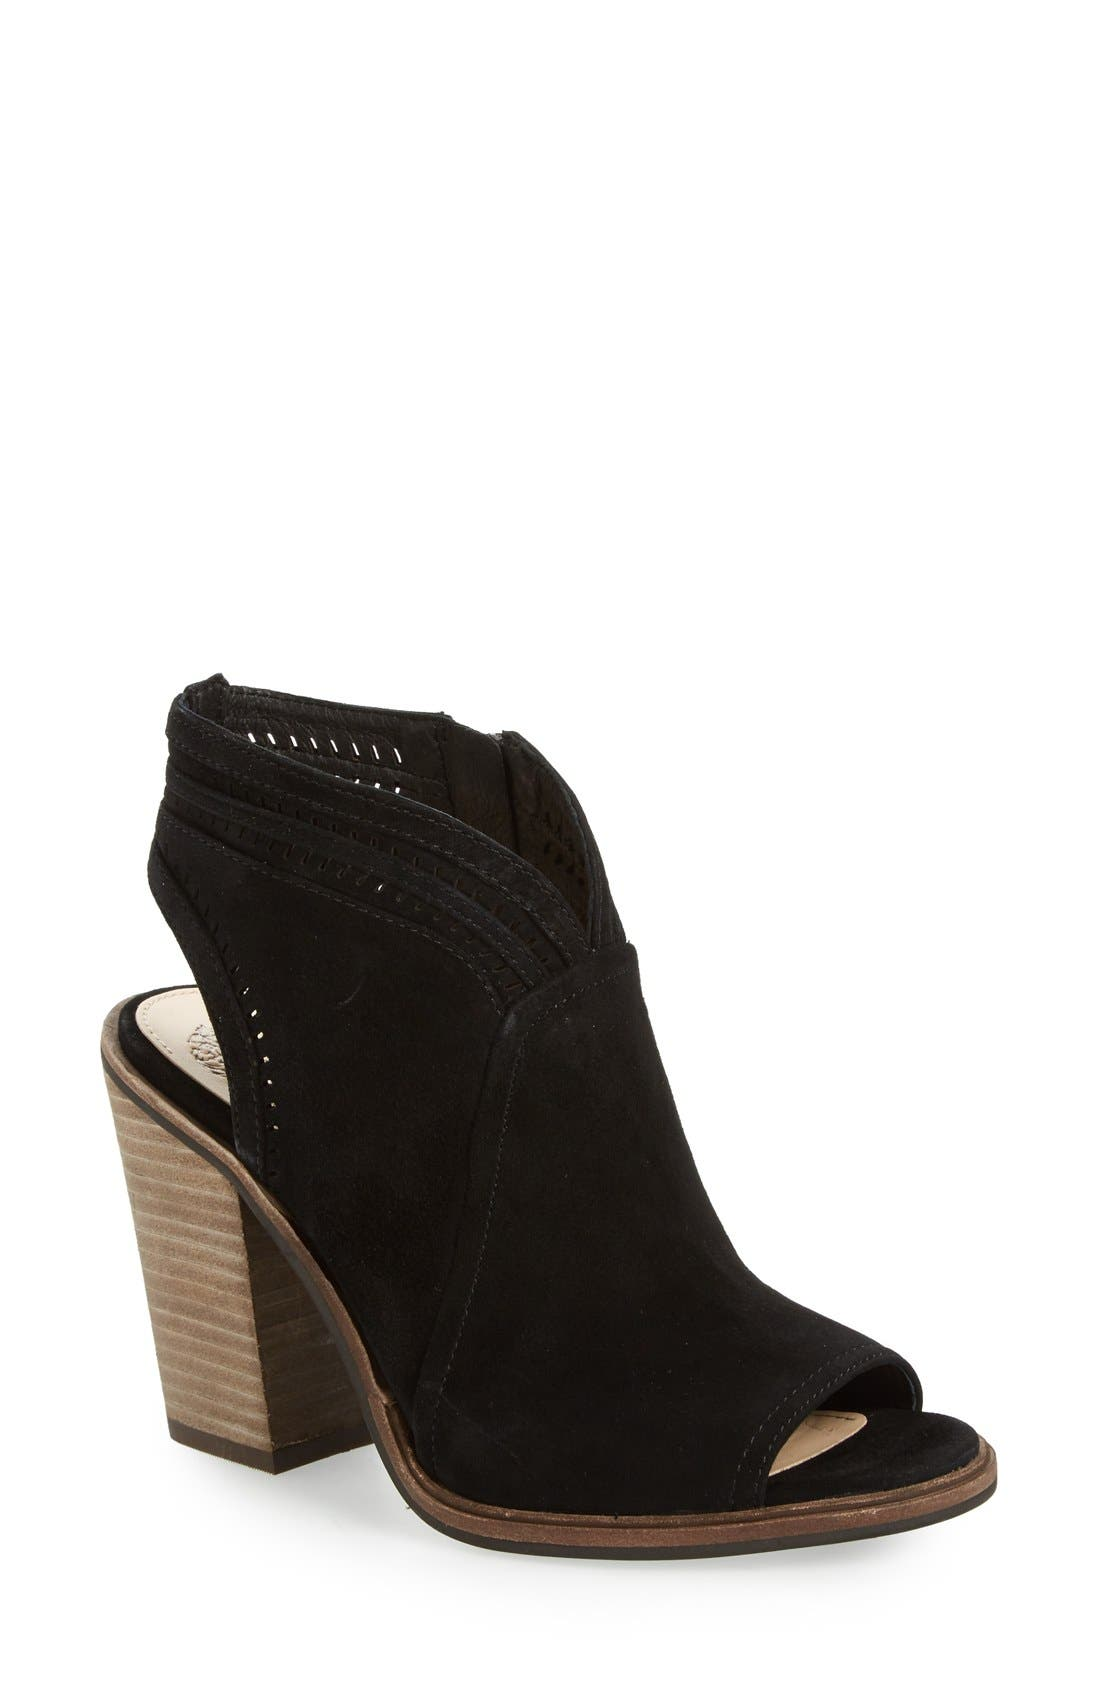 VINCE CAMUTO, 'Koral' Perforated Open Toe Bootie, Main thumbnail 1, color, 001